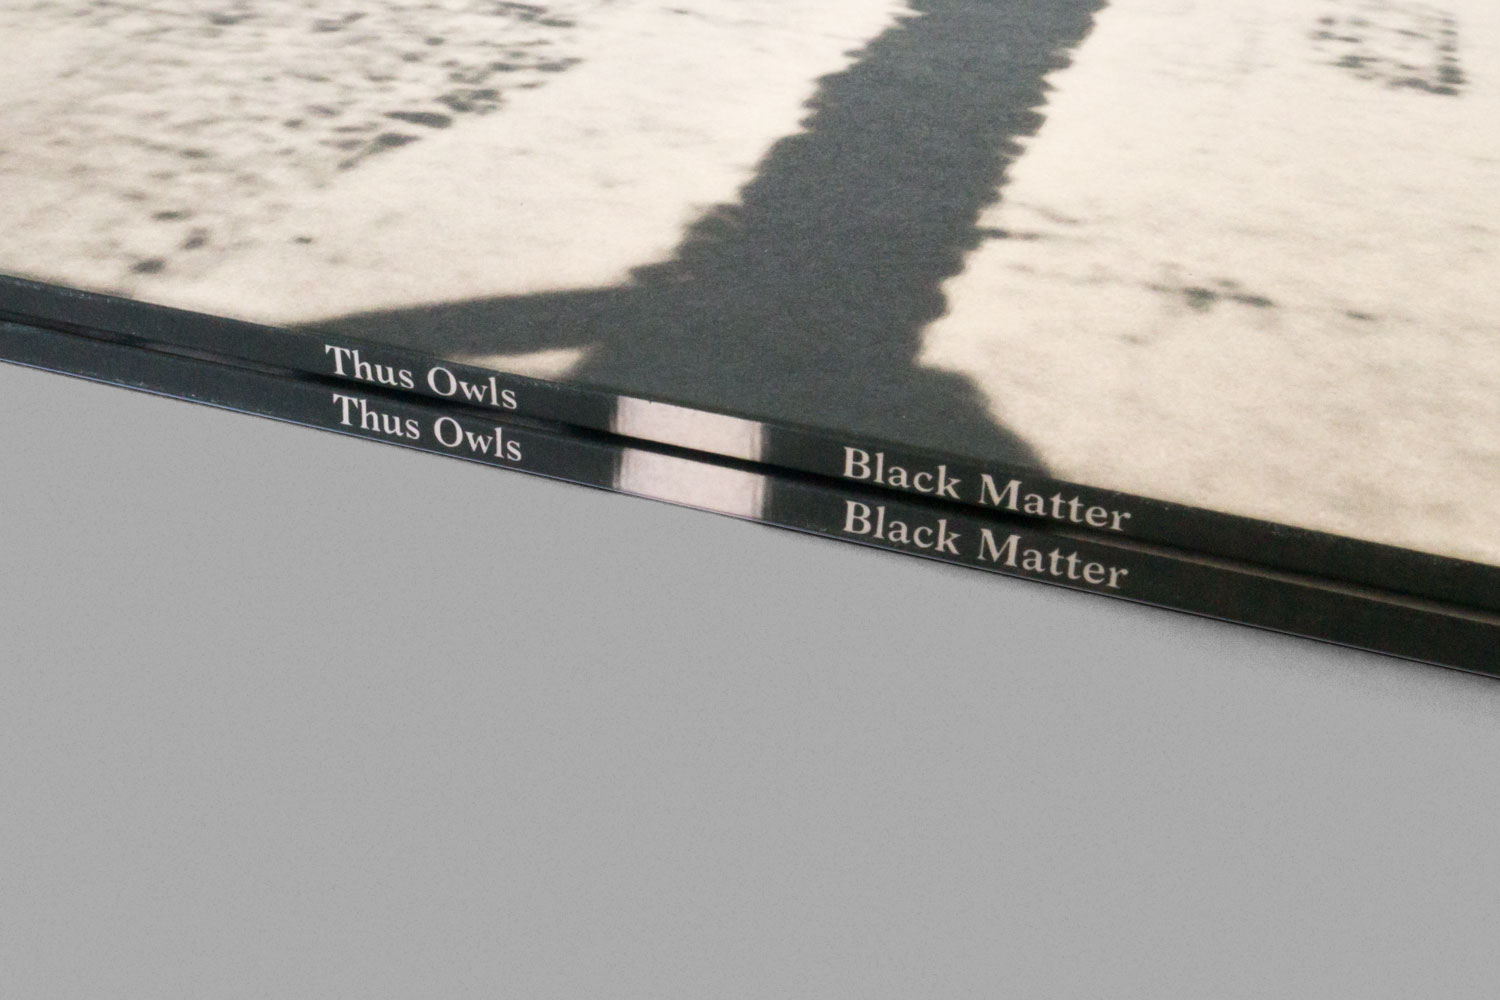 Thus Owls Black Matter Spine